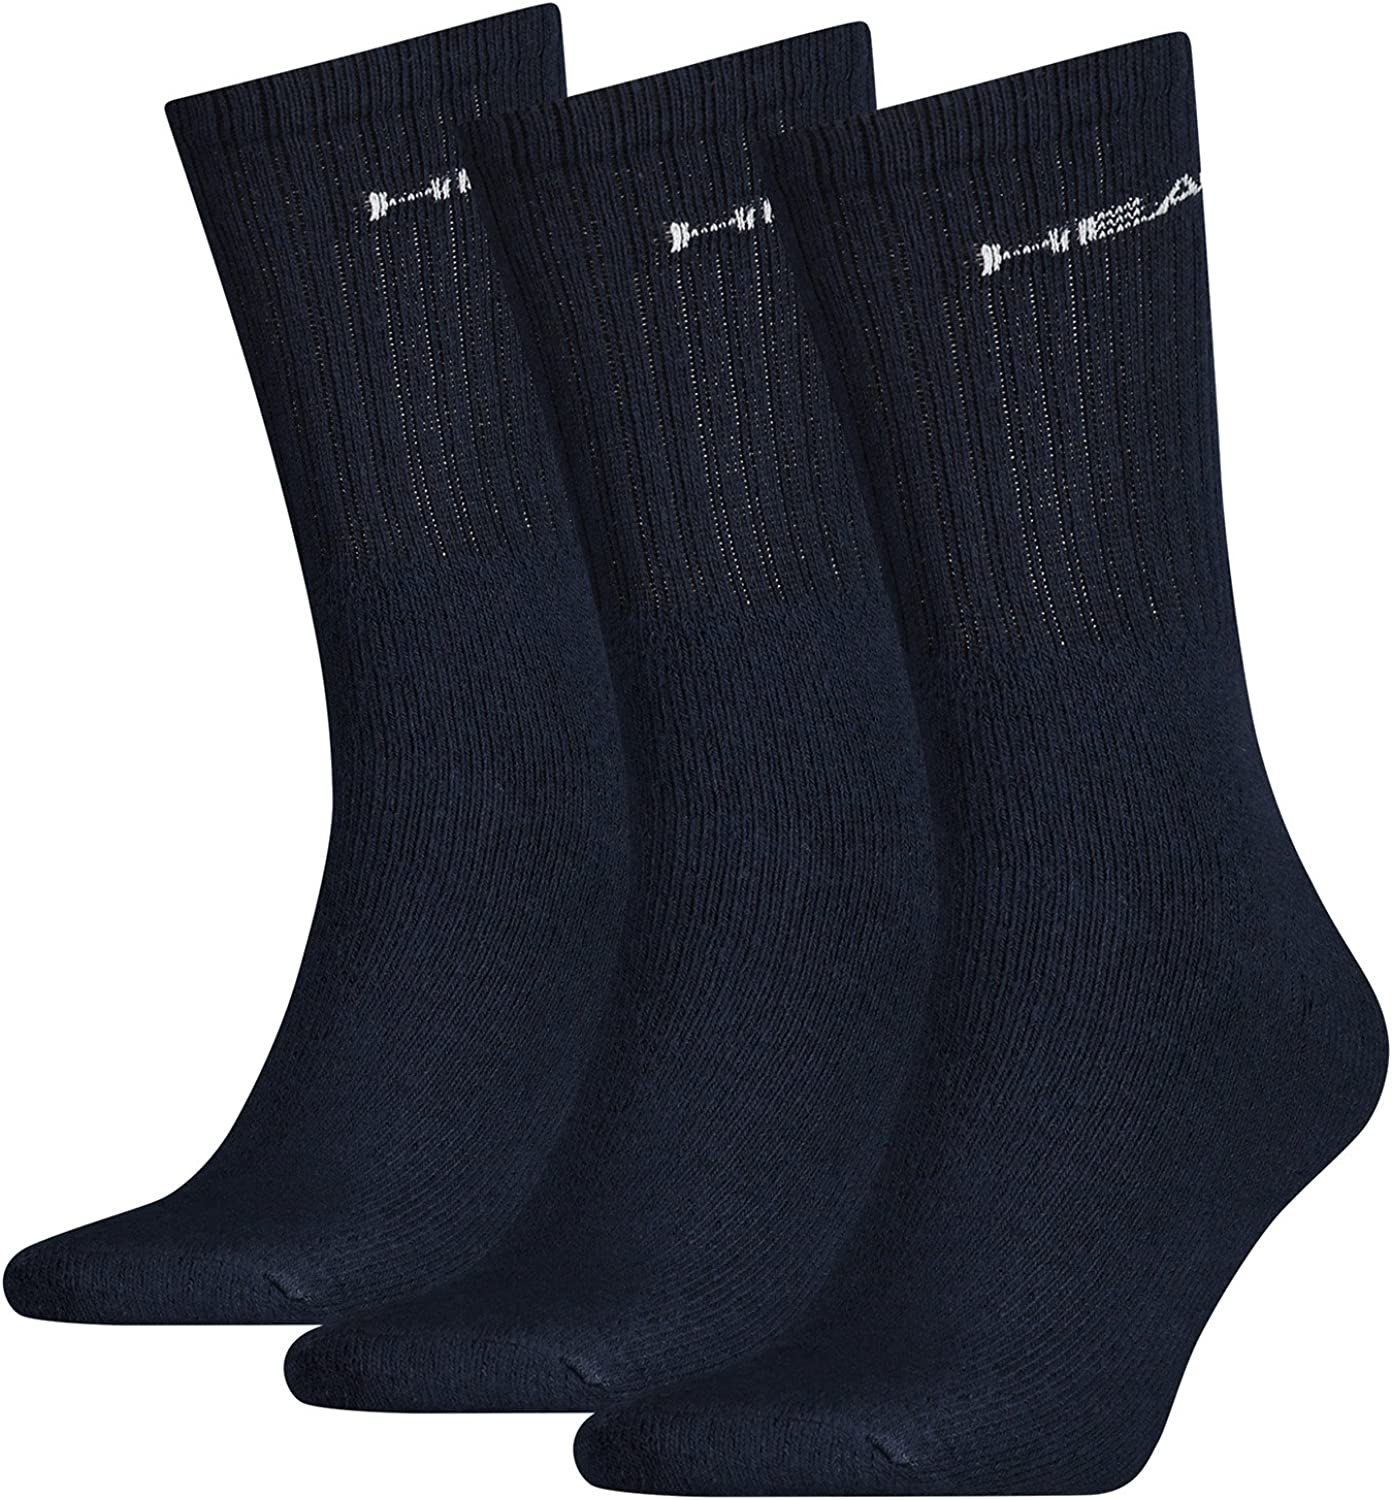 Head Crew 3P Calcetines, Unisex Adulto, Navy, 043